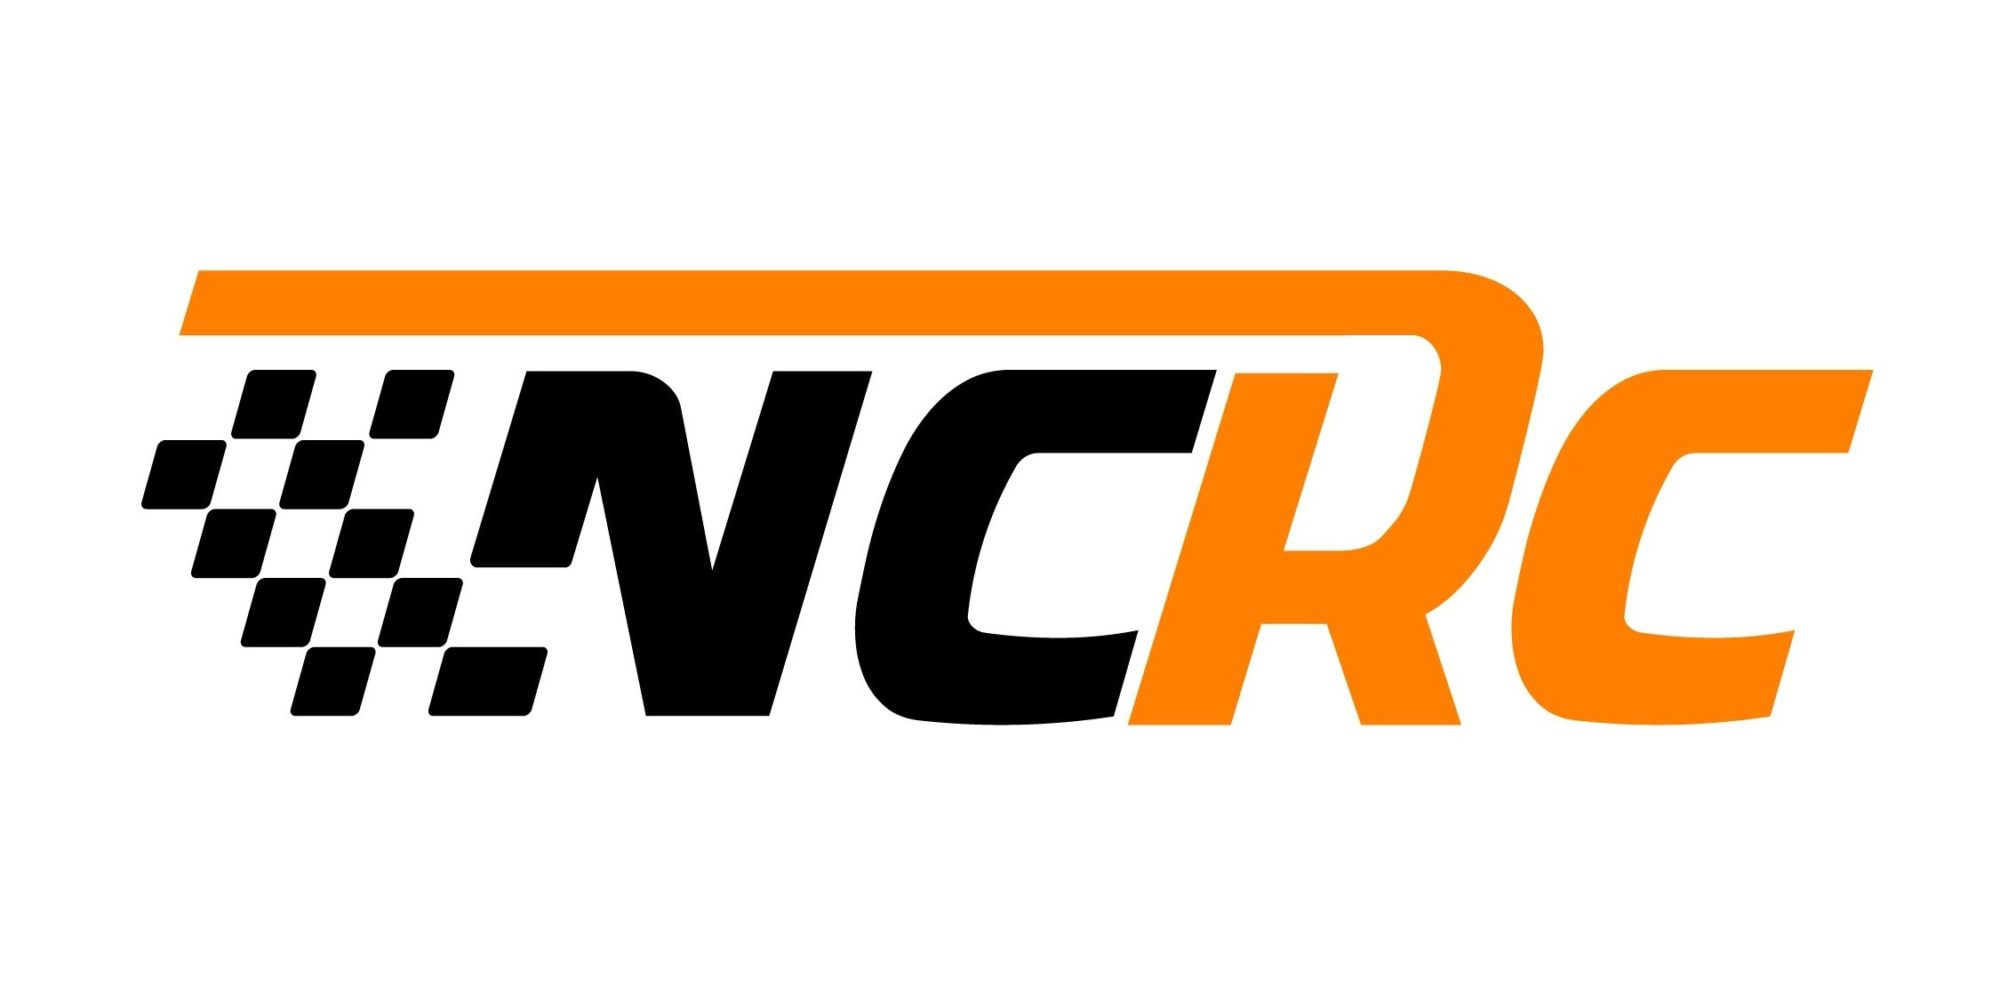 NCRC - Northern California Racing Club